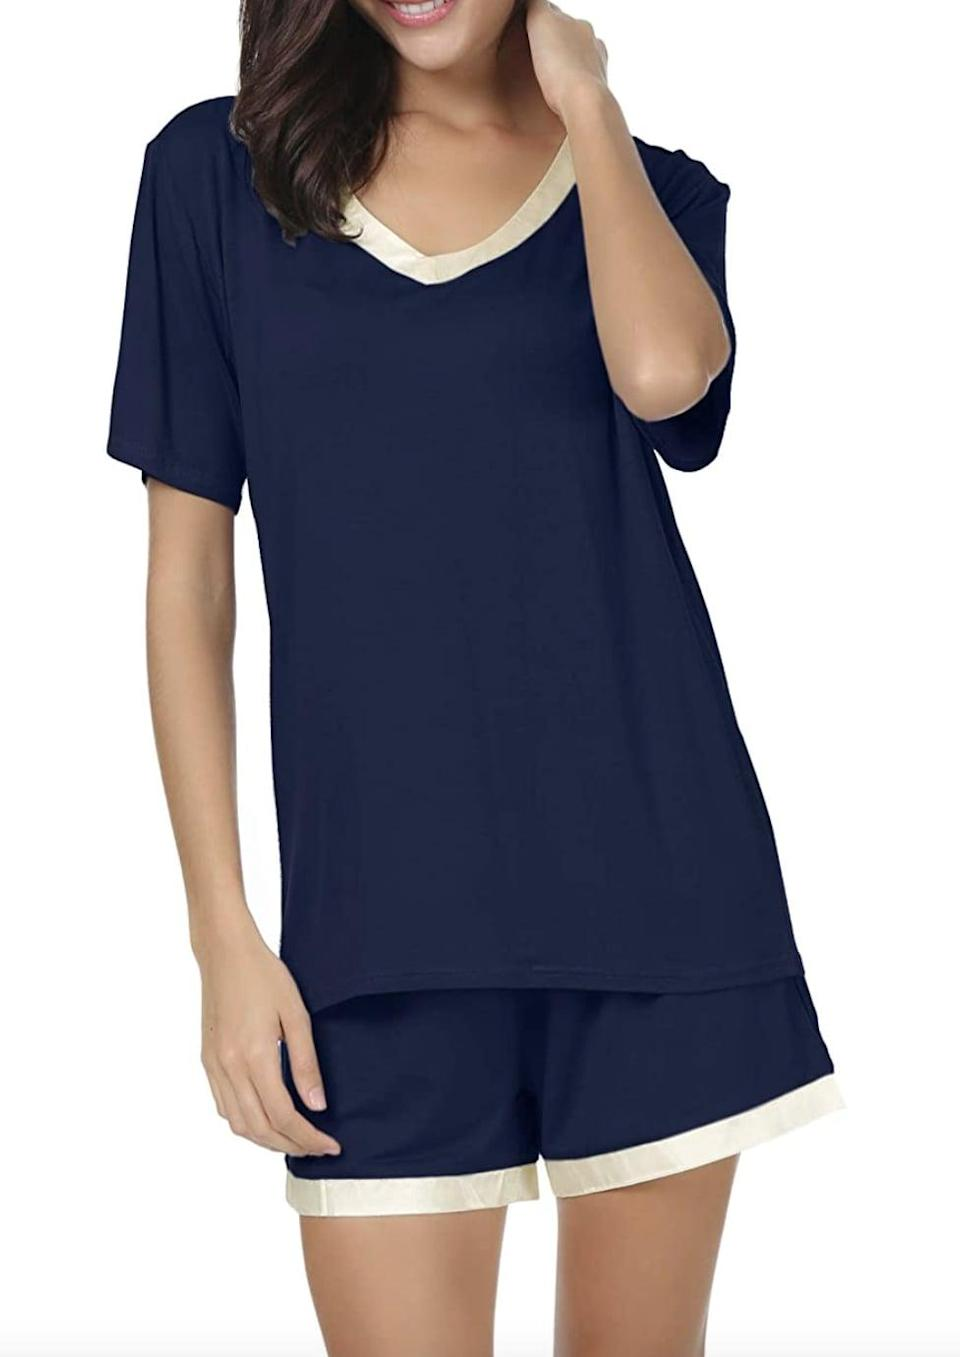 <p>The linings of this <span>Invug Shirt and Shorts Pajama Set </span> ($17 - $26) make it stylish and wearable. You can totally pair the top with your favorite denim cutoffs and go on a quick walk, so you're basically getting multiple looks for the price of one.</p>